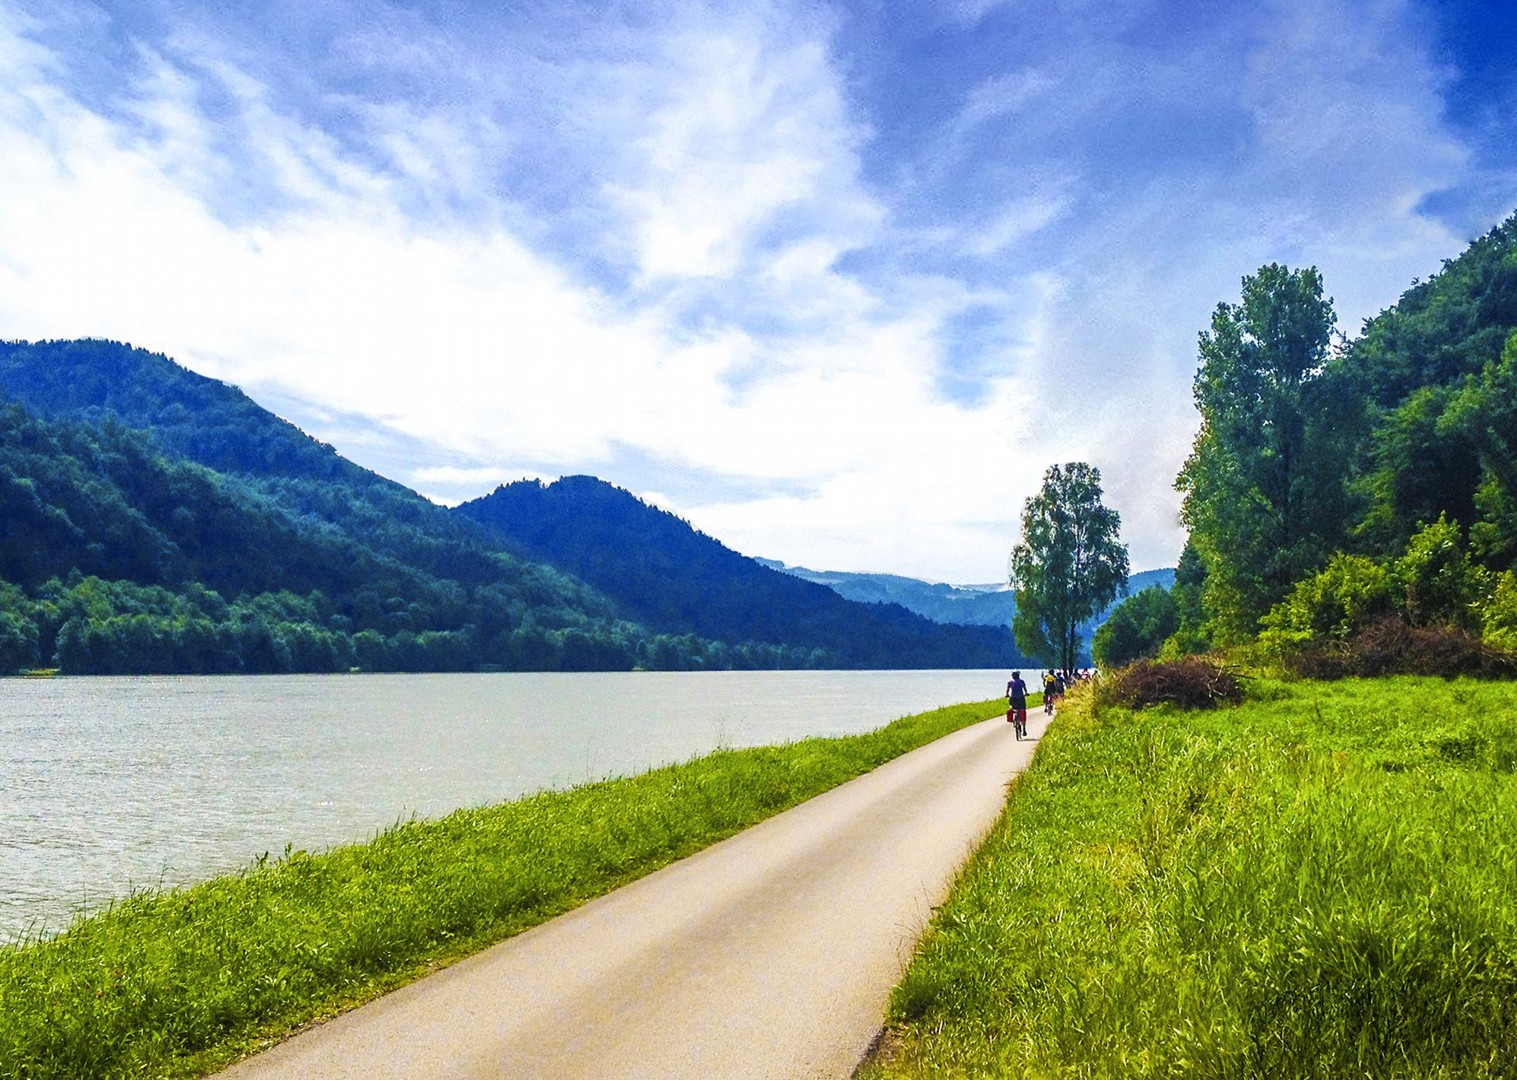 danube-cycle-path-10-days-germany-austria-self-guided-holiday-biking.jpg - Germany and Austria - The Danube Cyclepath (10 Days) - Self-Guided Leisure Cycling Holiday - Leisure Cycling